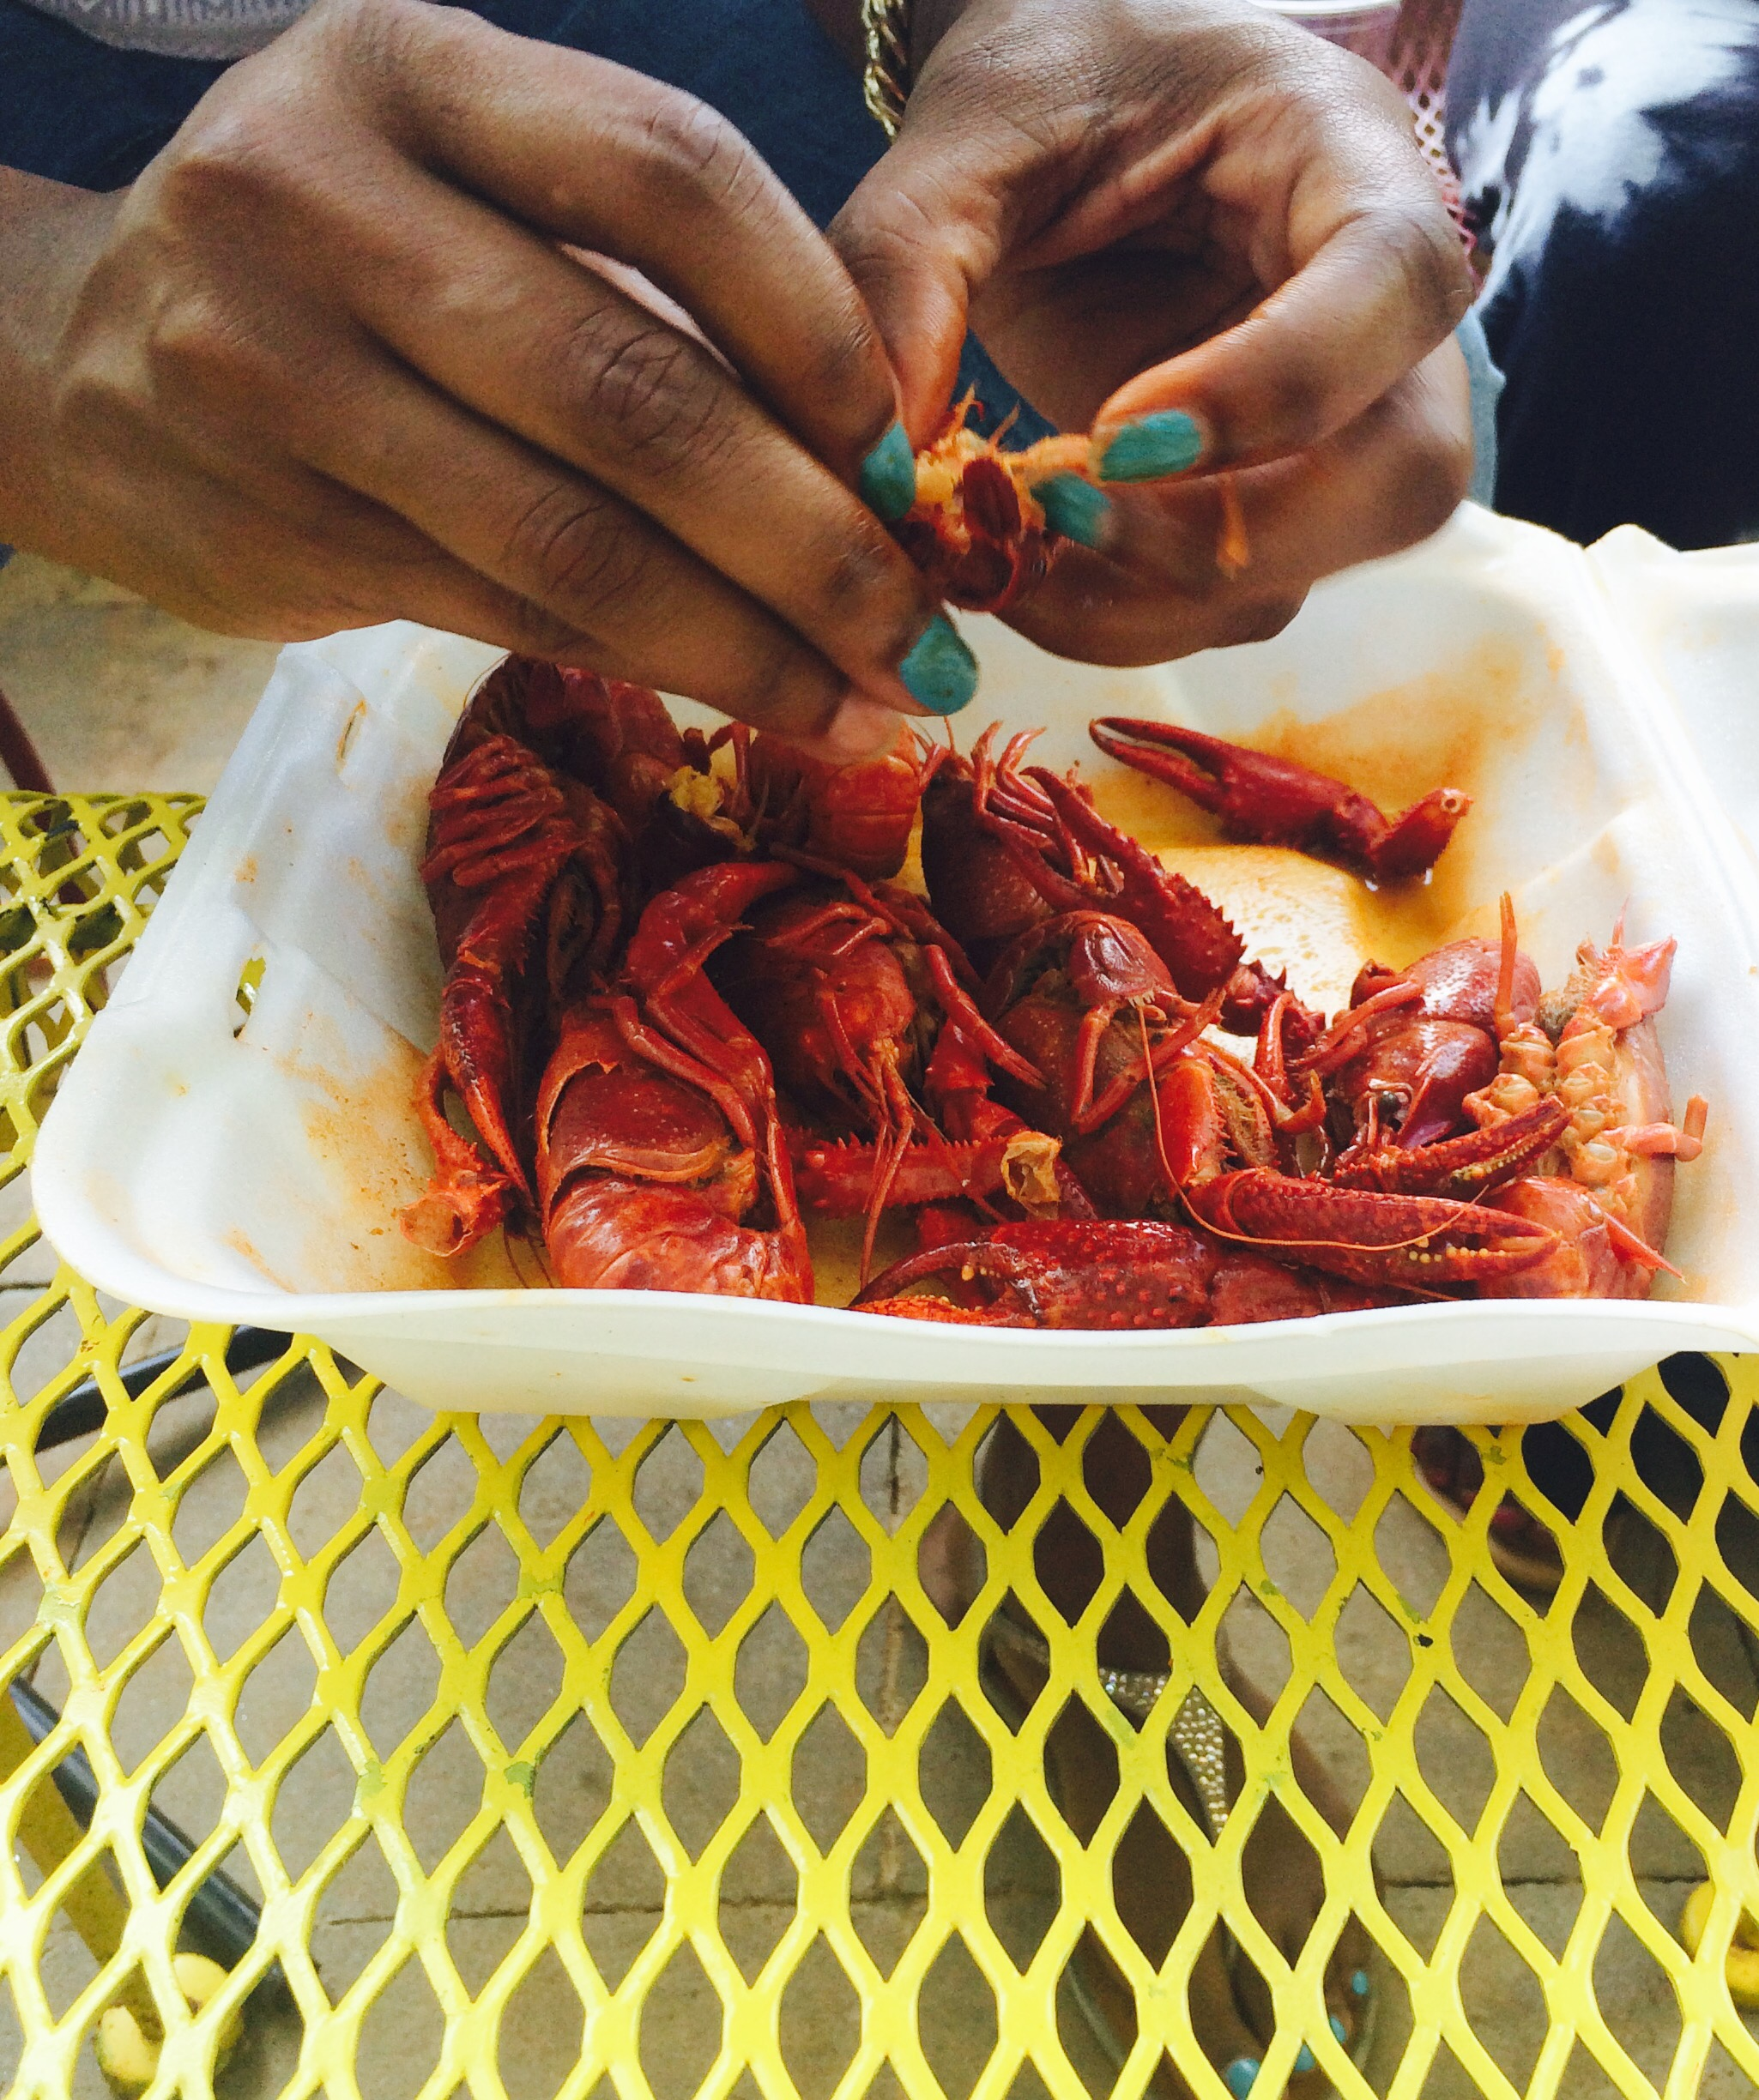 eating crawfish